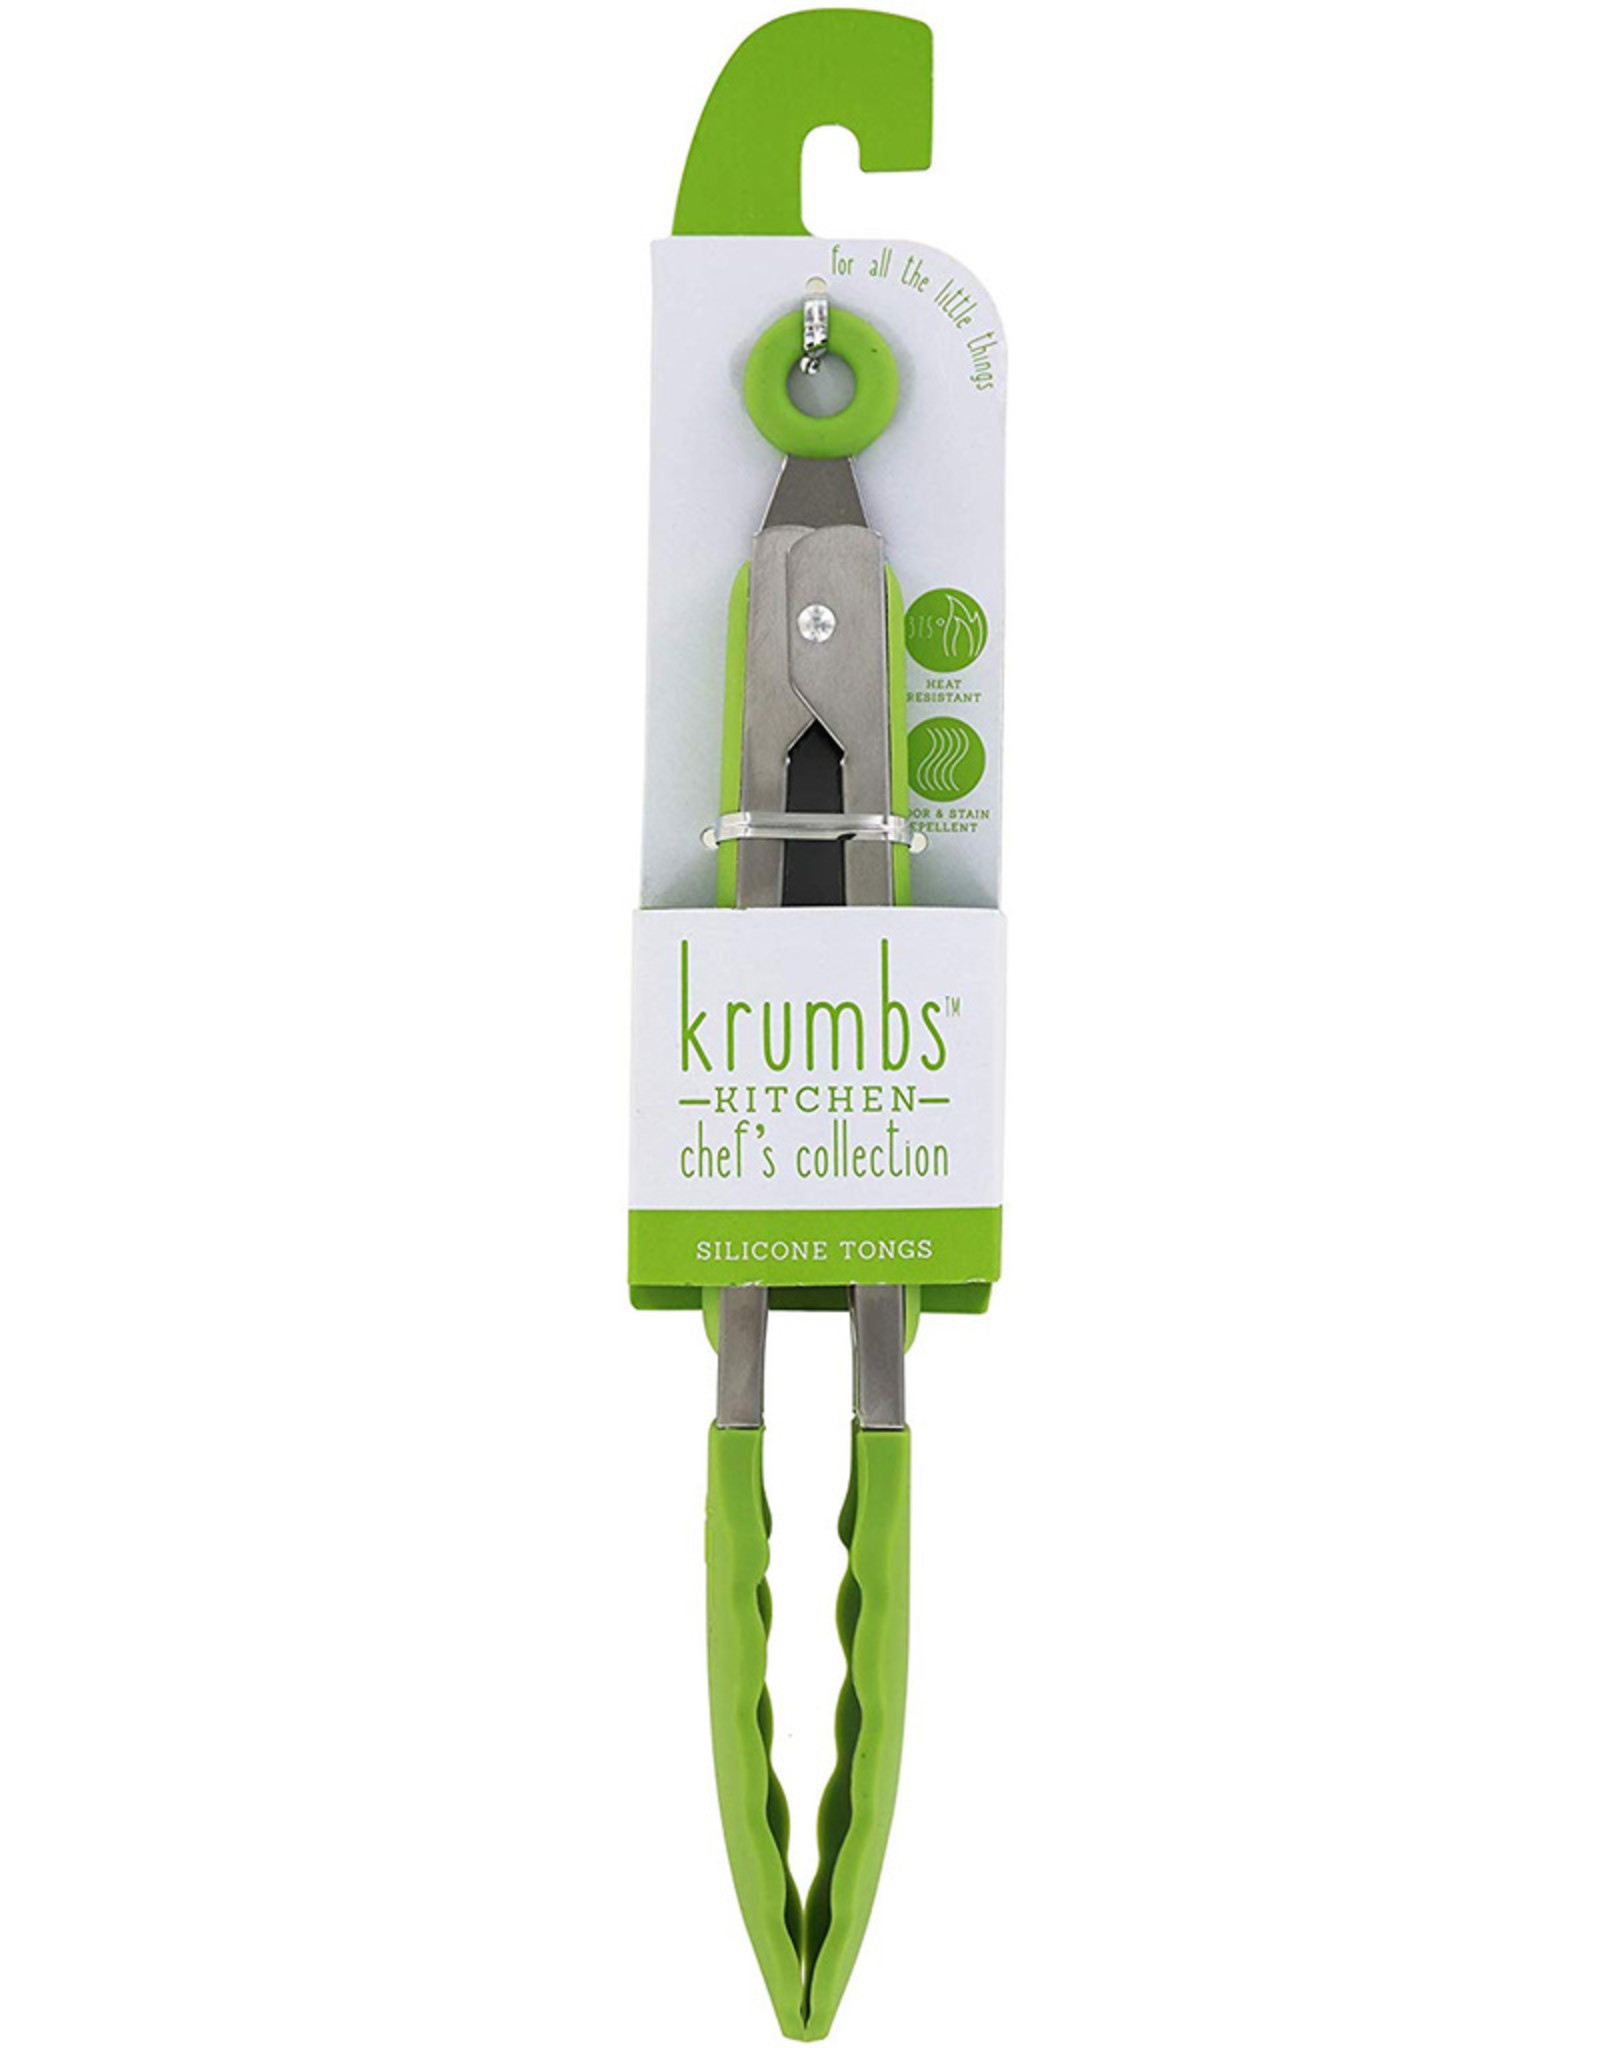 Green Silicone Tongs W Scalloped Grippers n Pull Lock